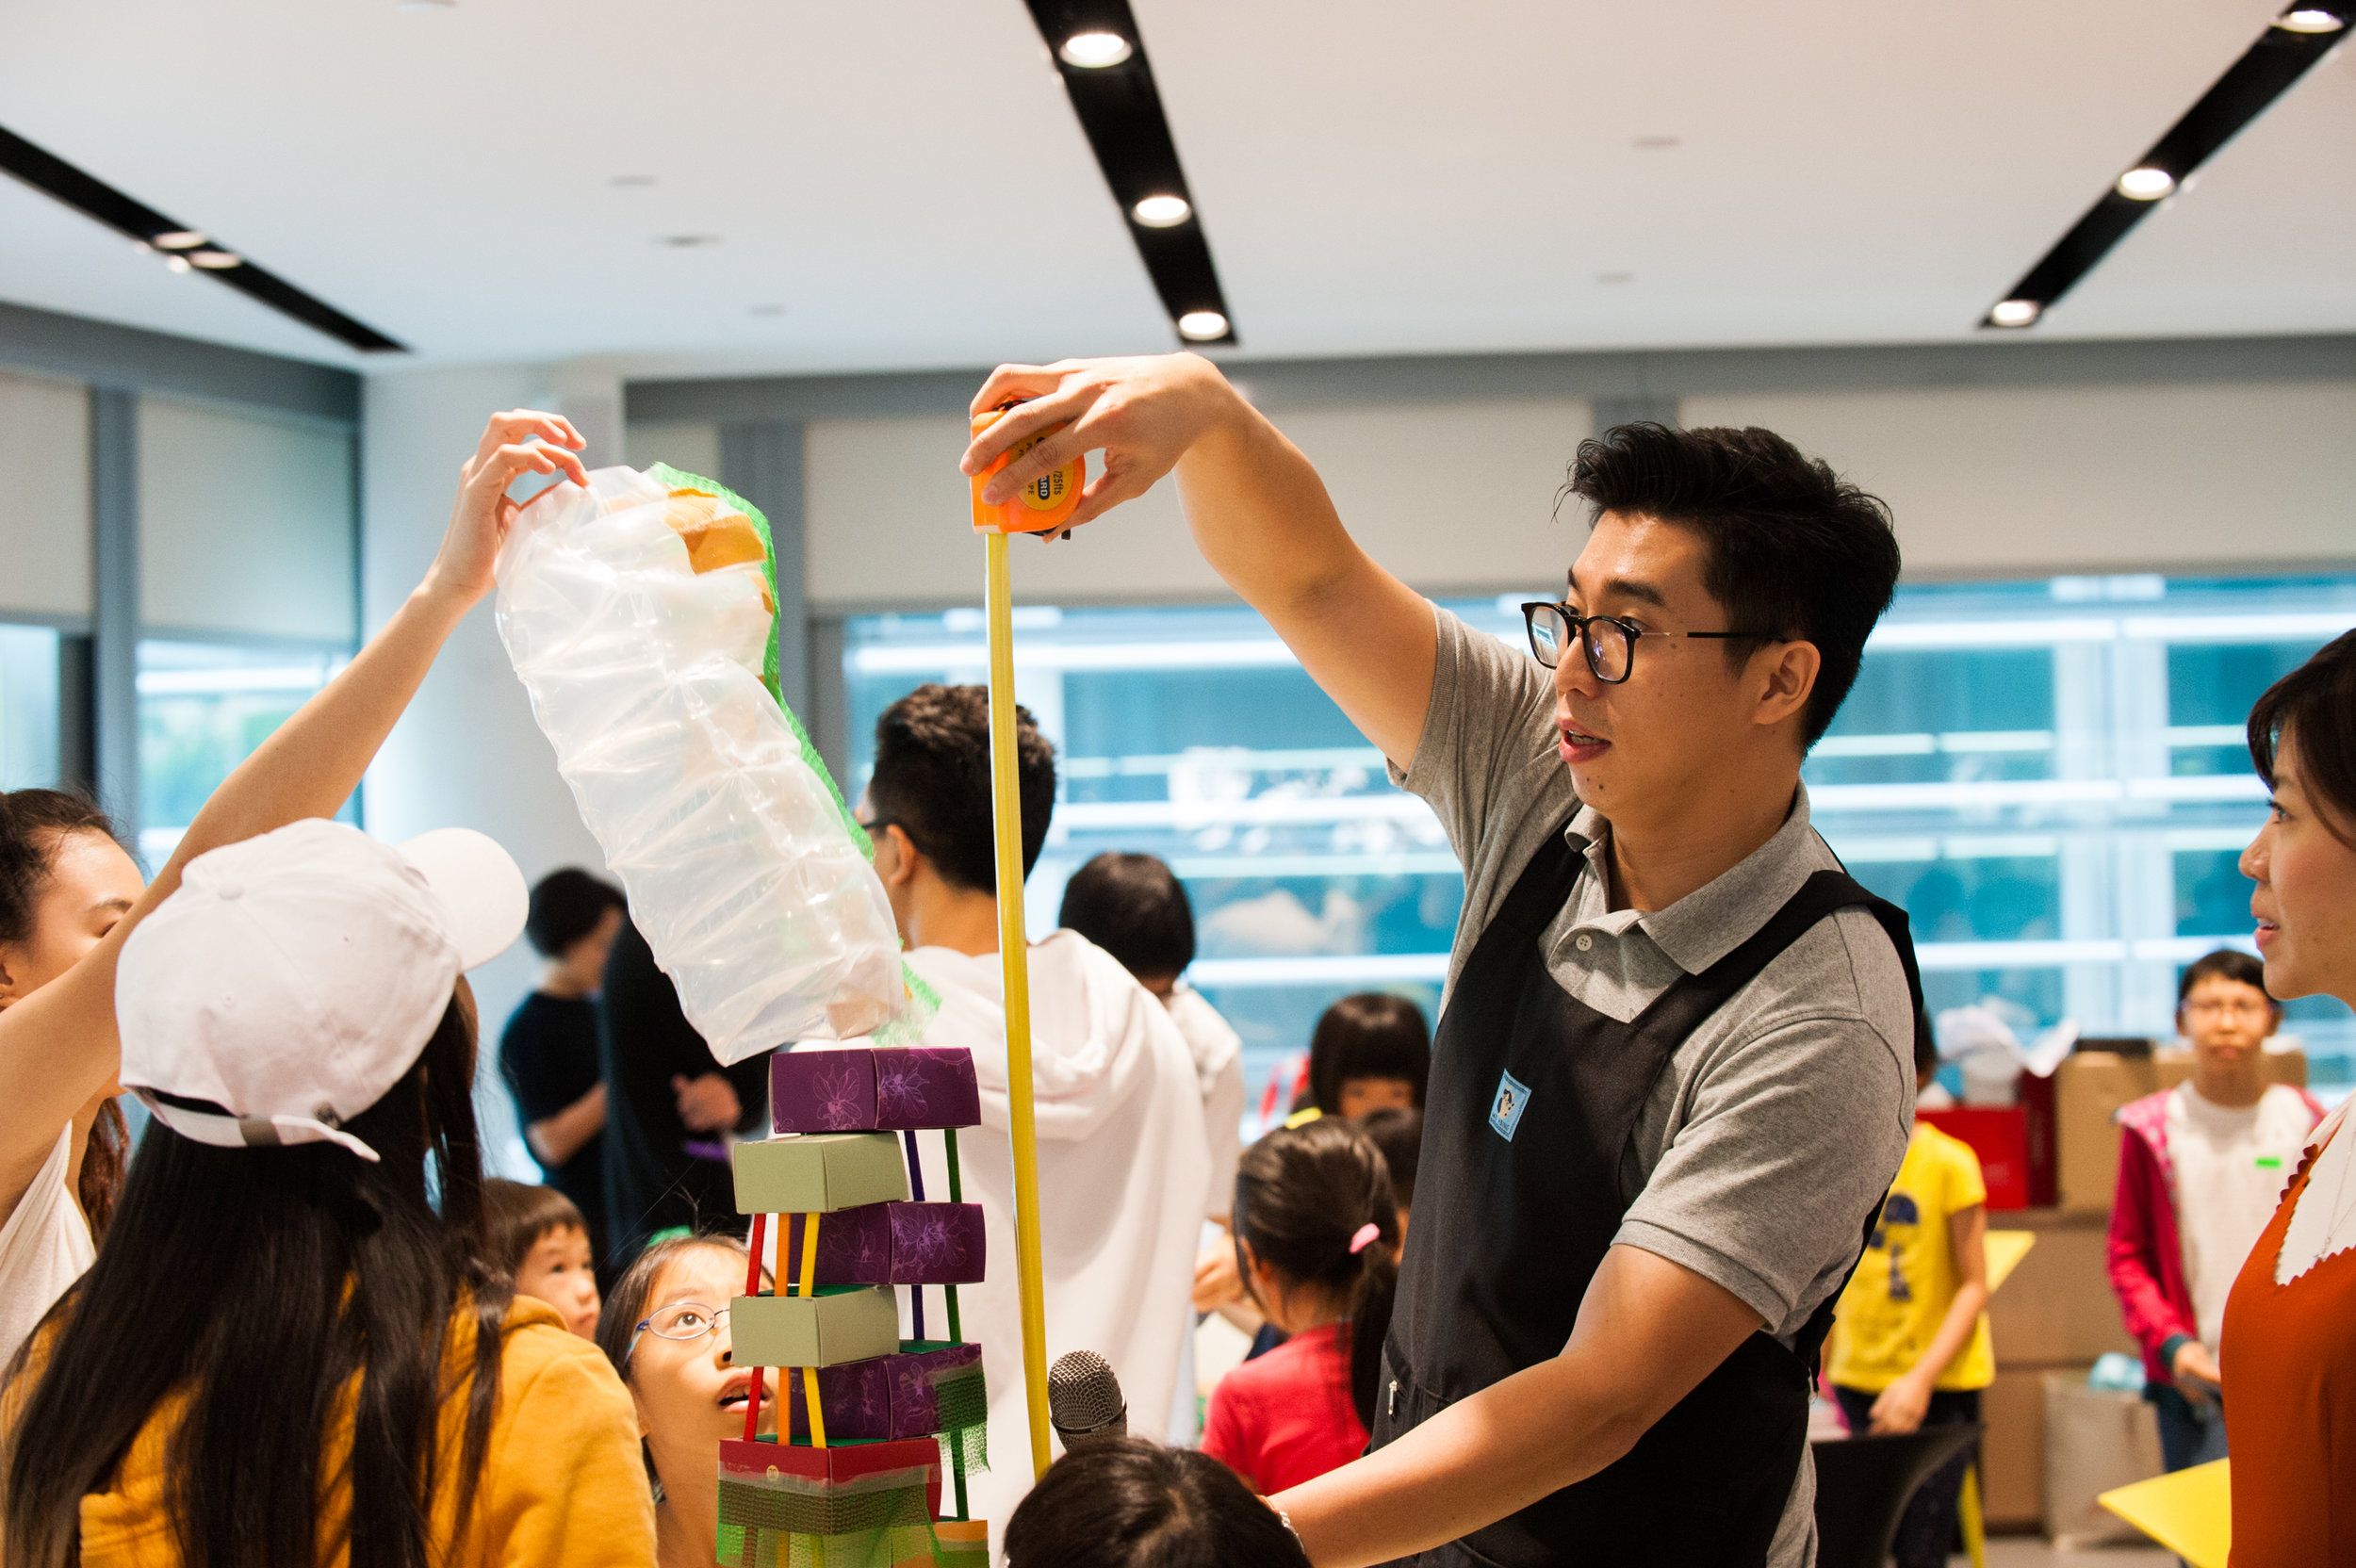 Archifest 2017 measuring the height of the tower.jpg